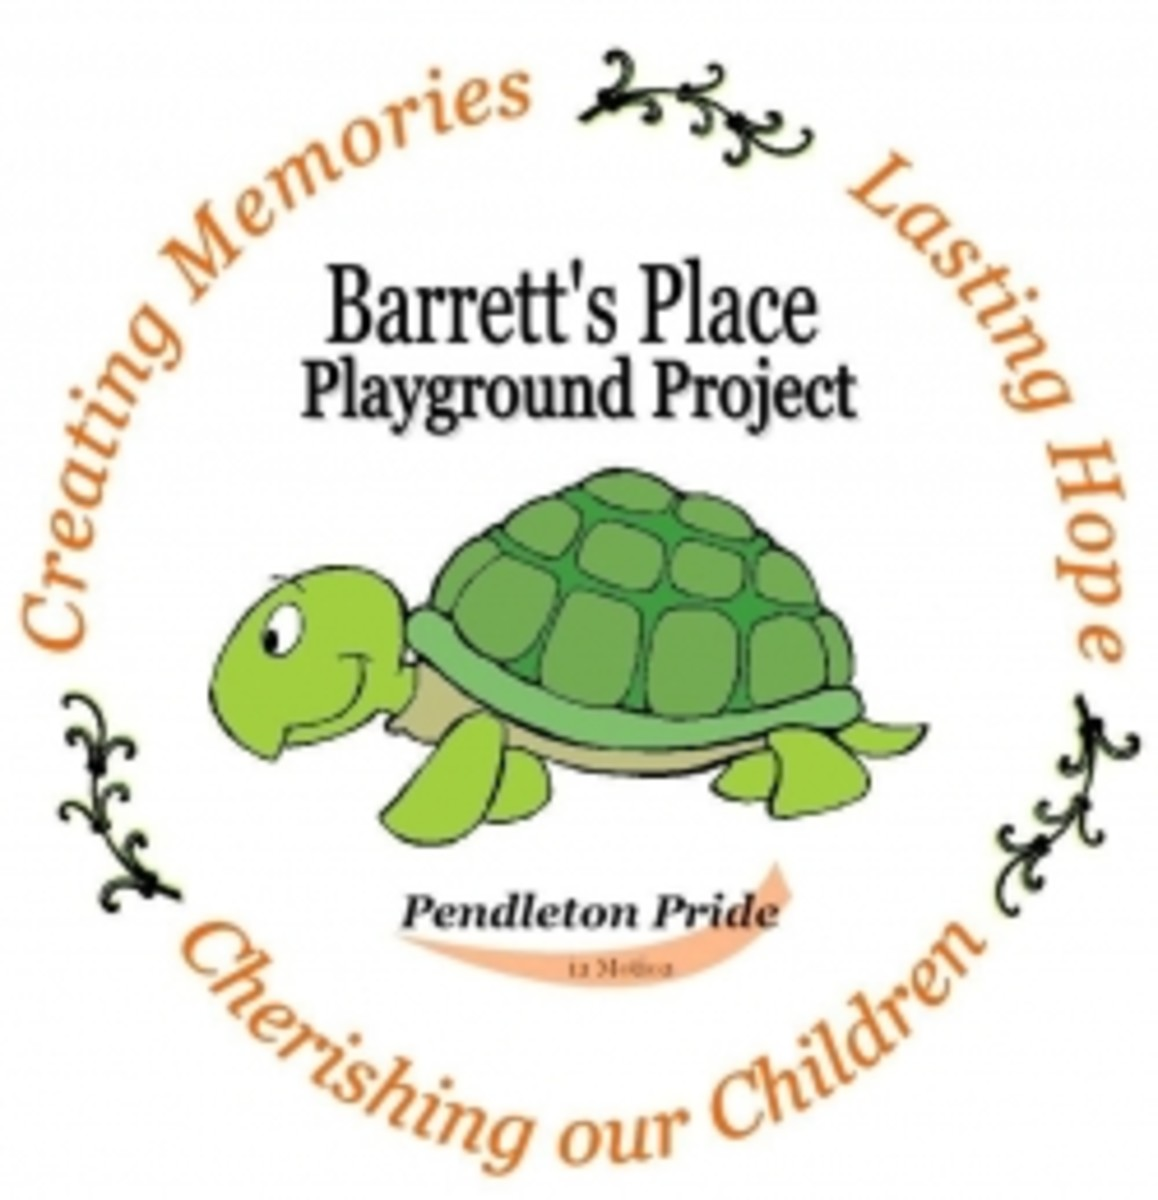 Barrett's Place Playground in Pendleton SC